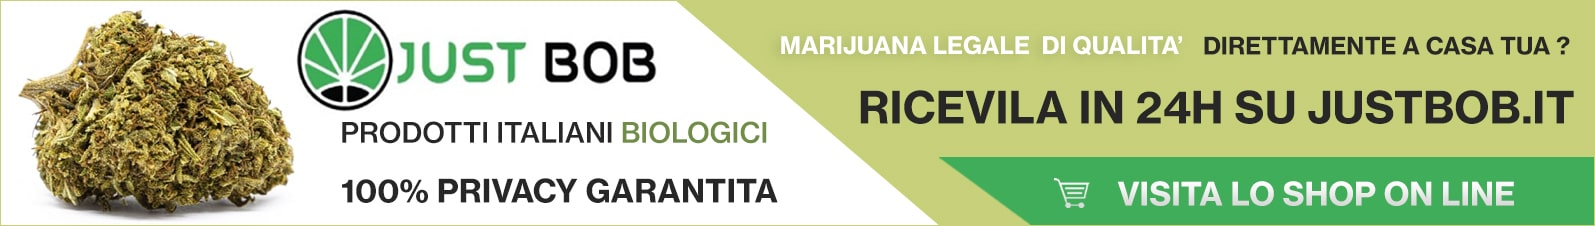 Cannabis Light Italia JustBob